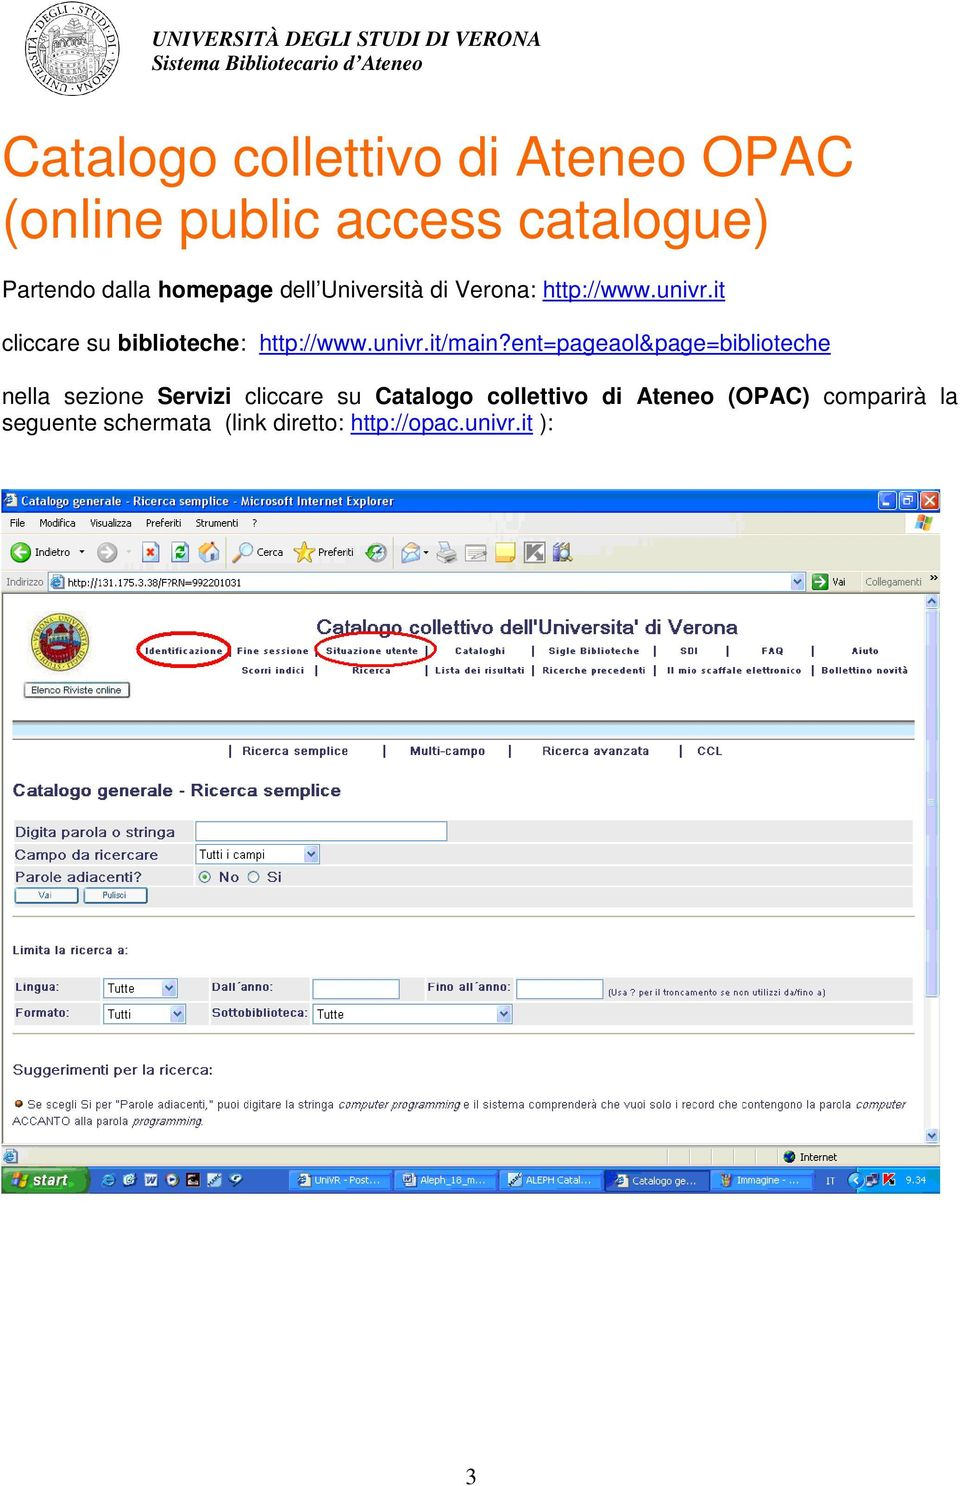 it cliccare su biblioteche: http://www.univr.it/main?